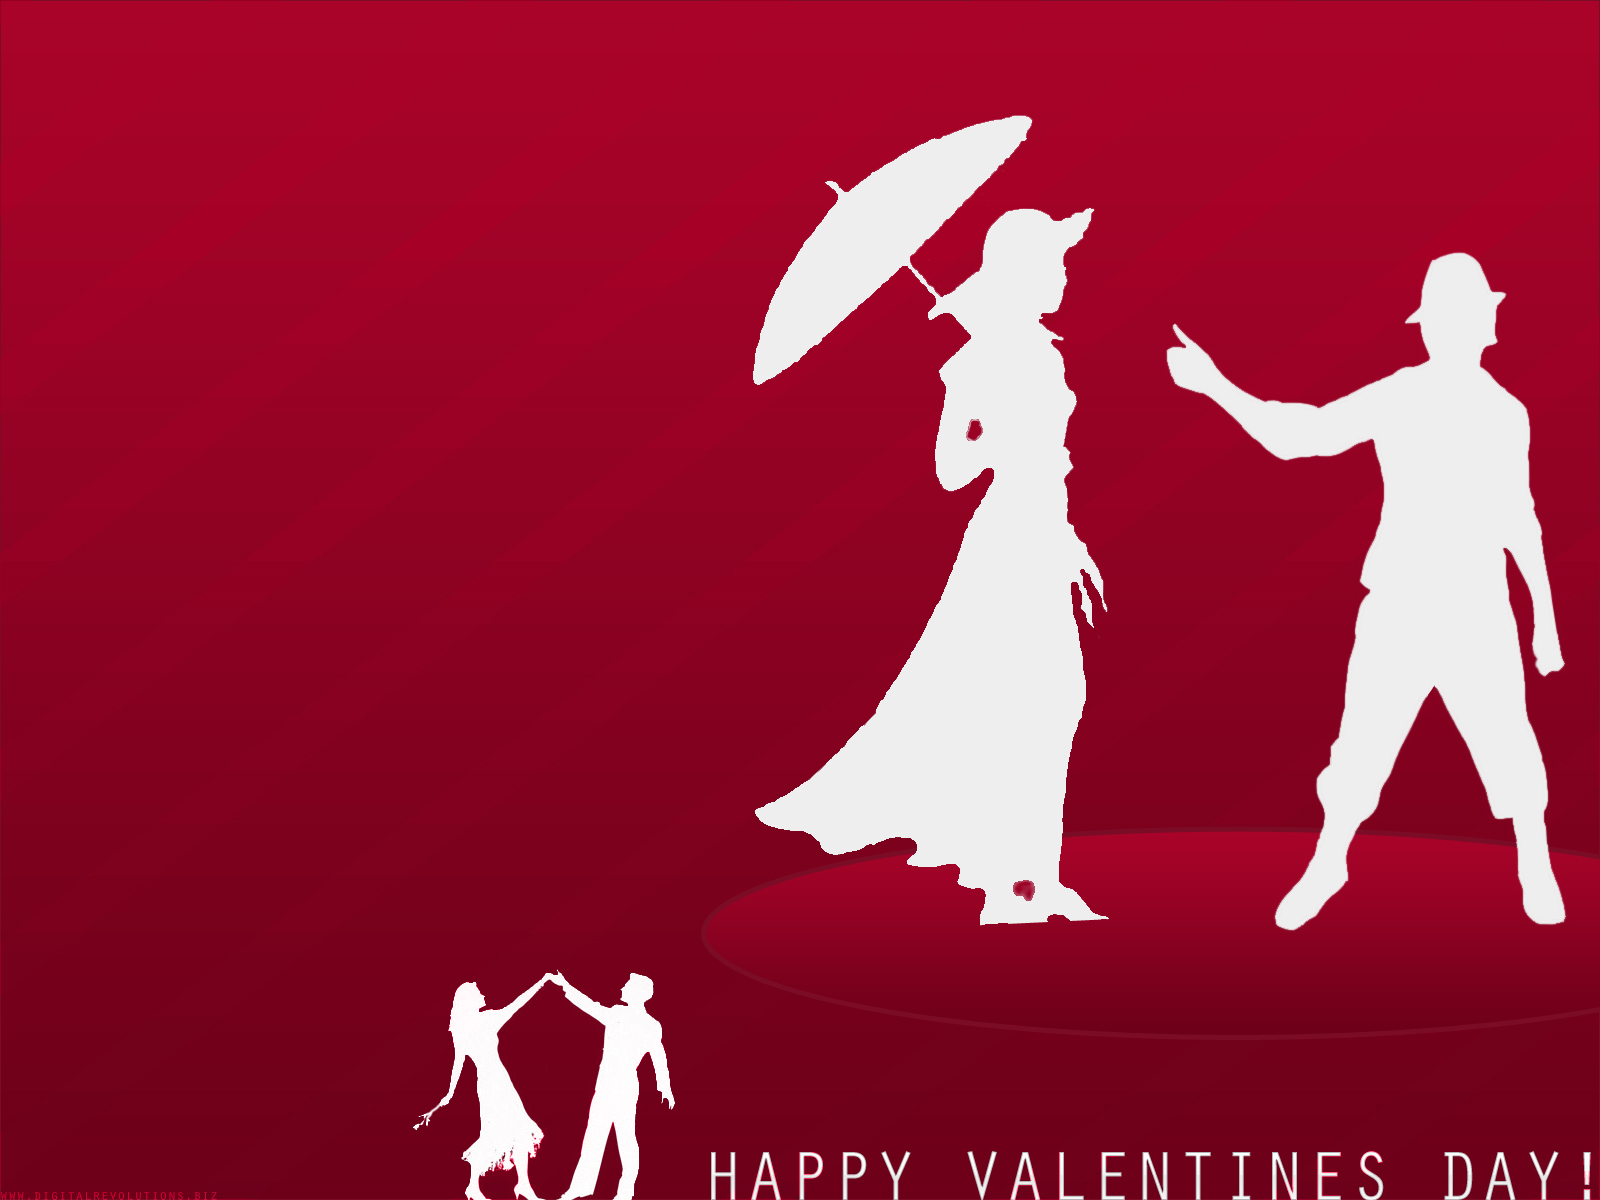 Valentines Day Wallpapers 2015 2016 Wallpaper Hd 1600x1200